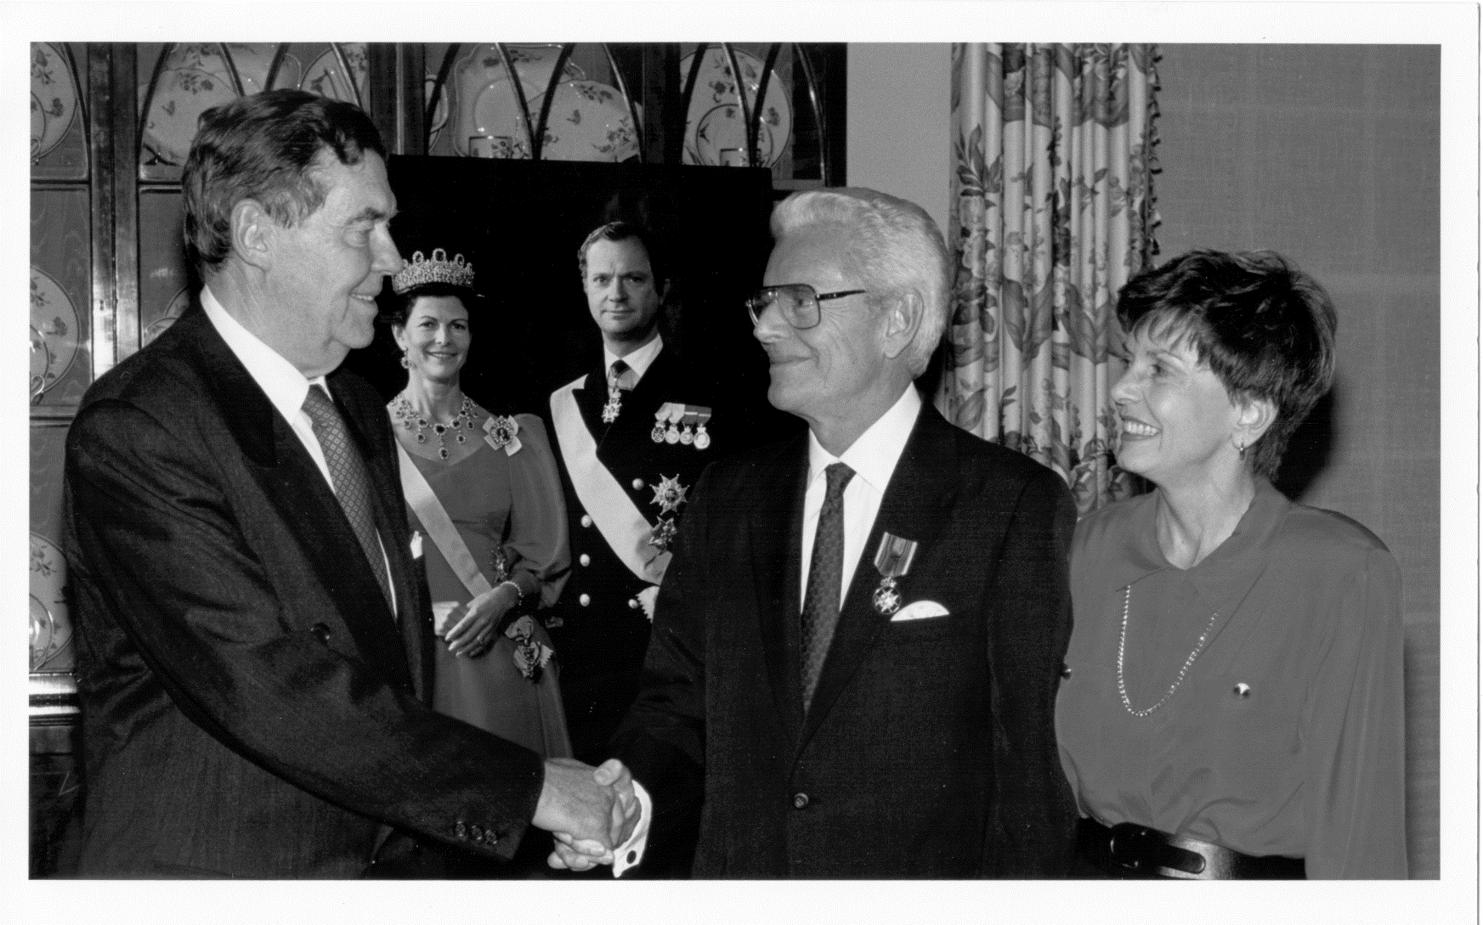 Dr. McGovern receiving the Royal Medallion of the Polar Star awarded in Houston by unidentified representative with the King and Queen of Sweden Award (pictured in the background)